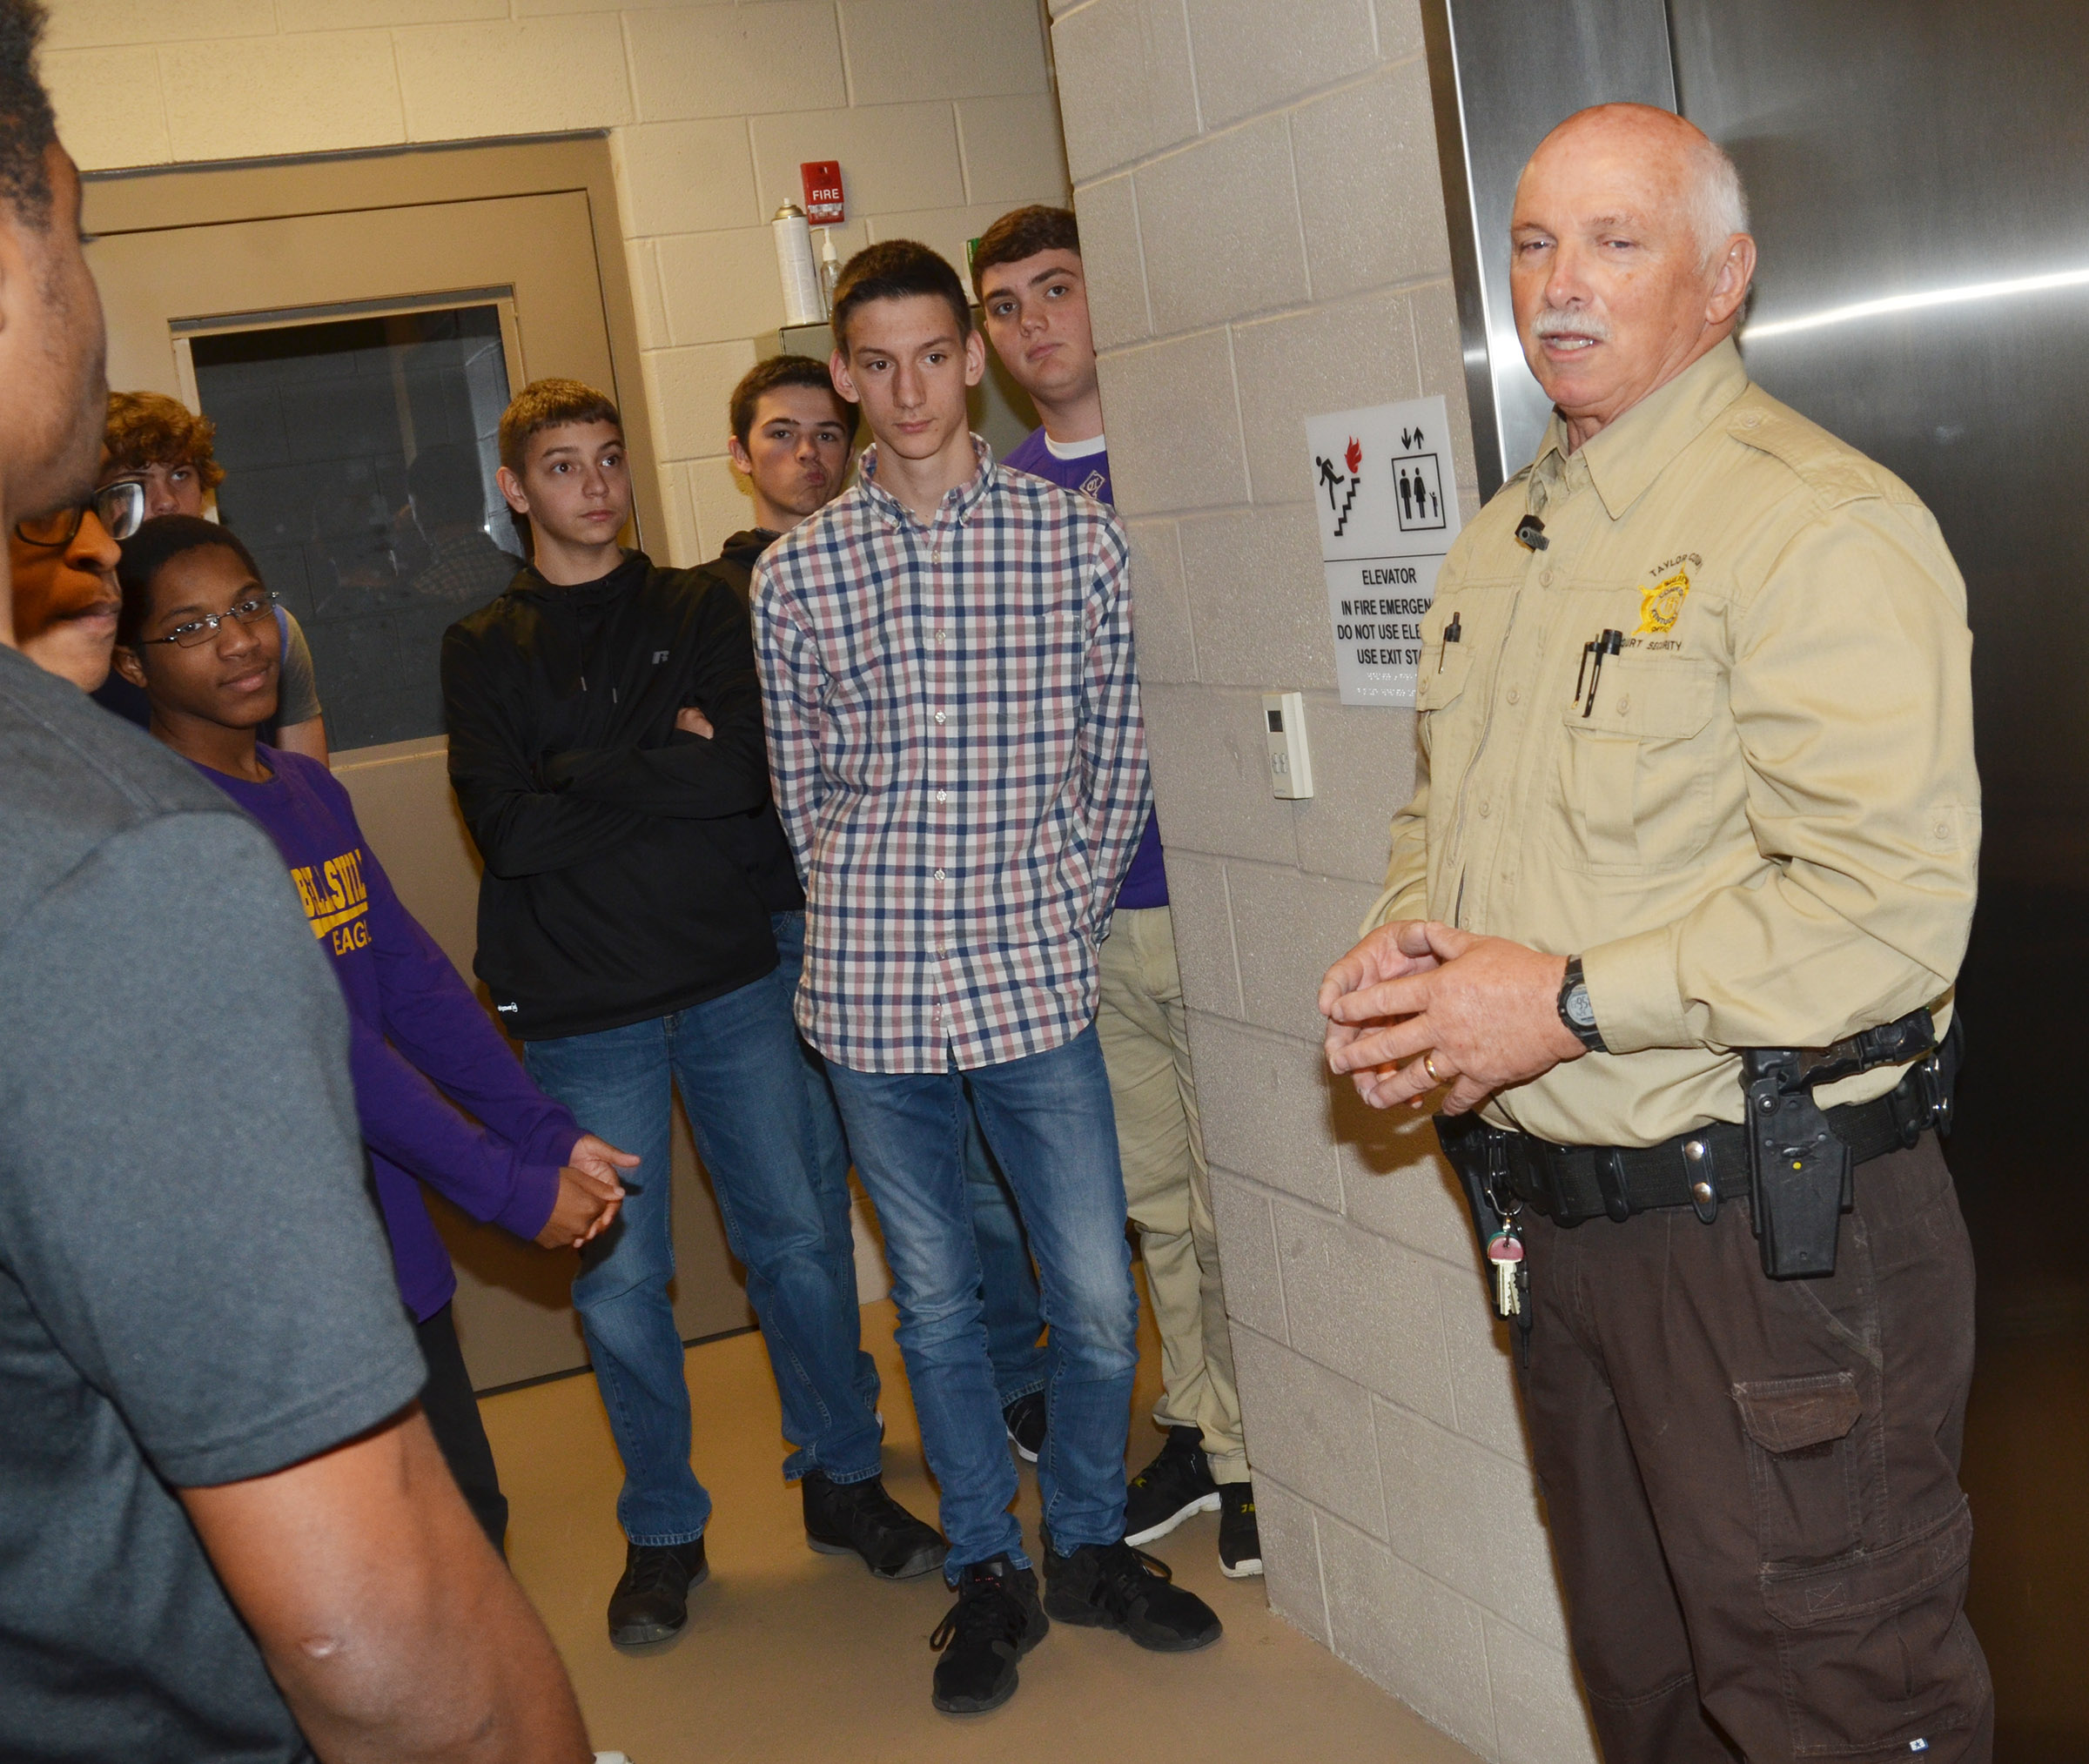 Kenny Anderson, a security officer at Taylor County Judicial Center, talks to CHS sophomores about how inmates are transported to appear in court.